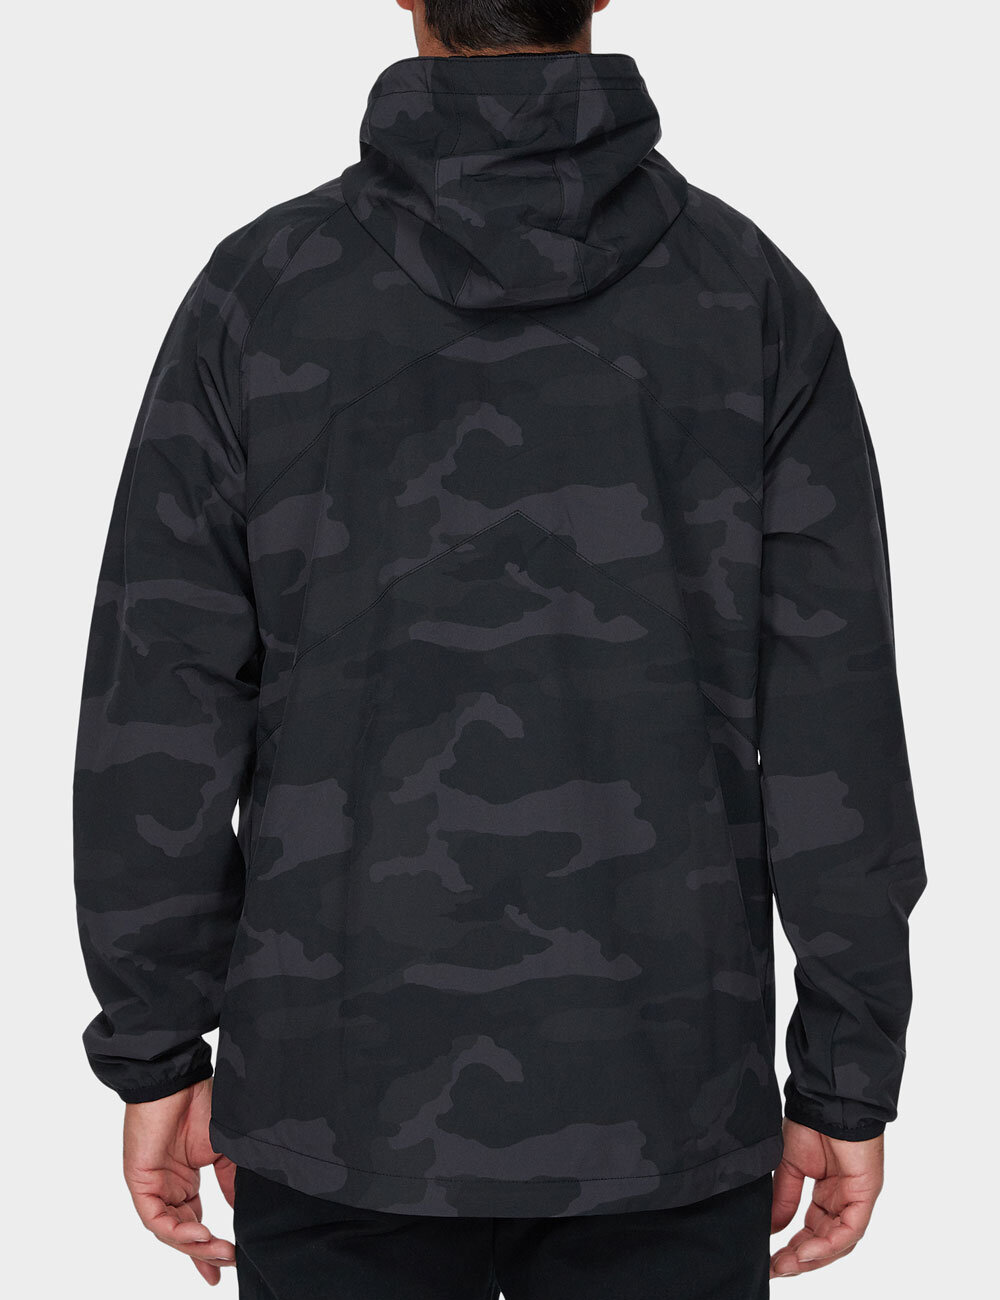 a4117669e VA WINDBREAKER - Men's Tops | Surf & Skate Clothing | Streetwear - RVCA W19